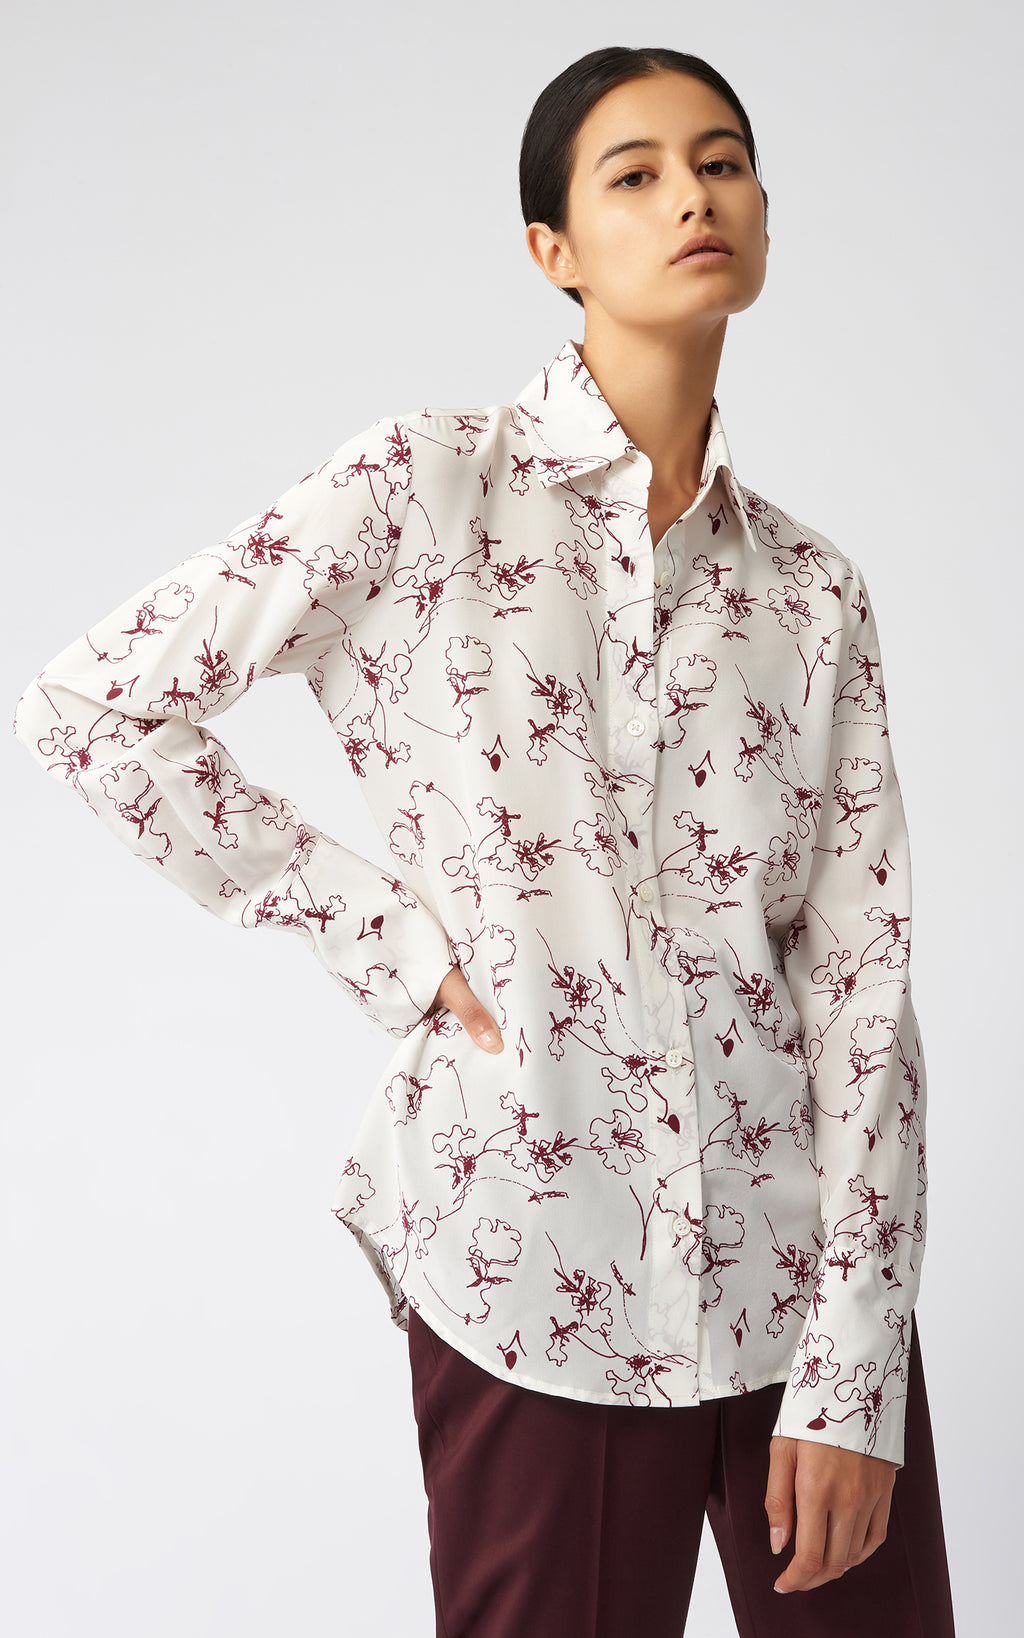 CLASSIC TAILORED BLOUSE - BORDEAUX FLORAL